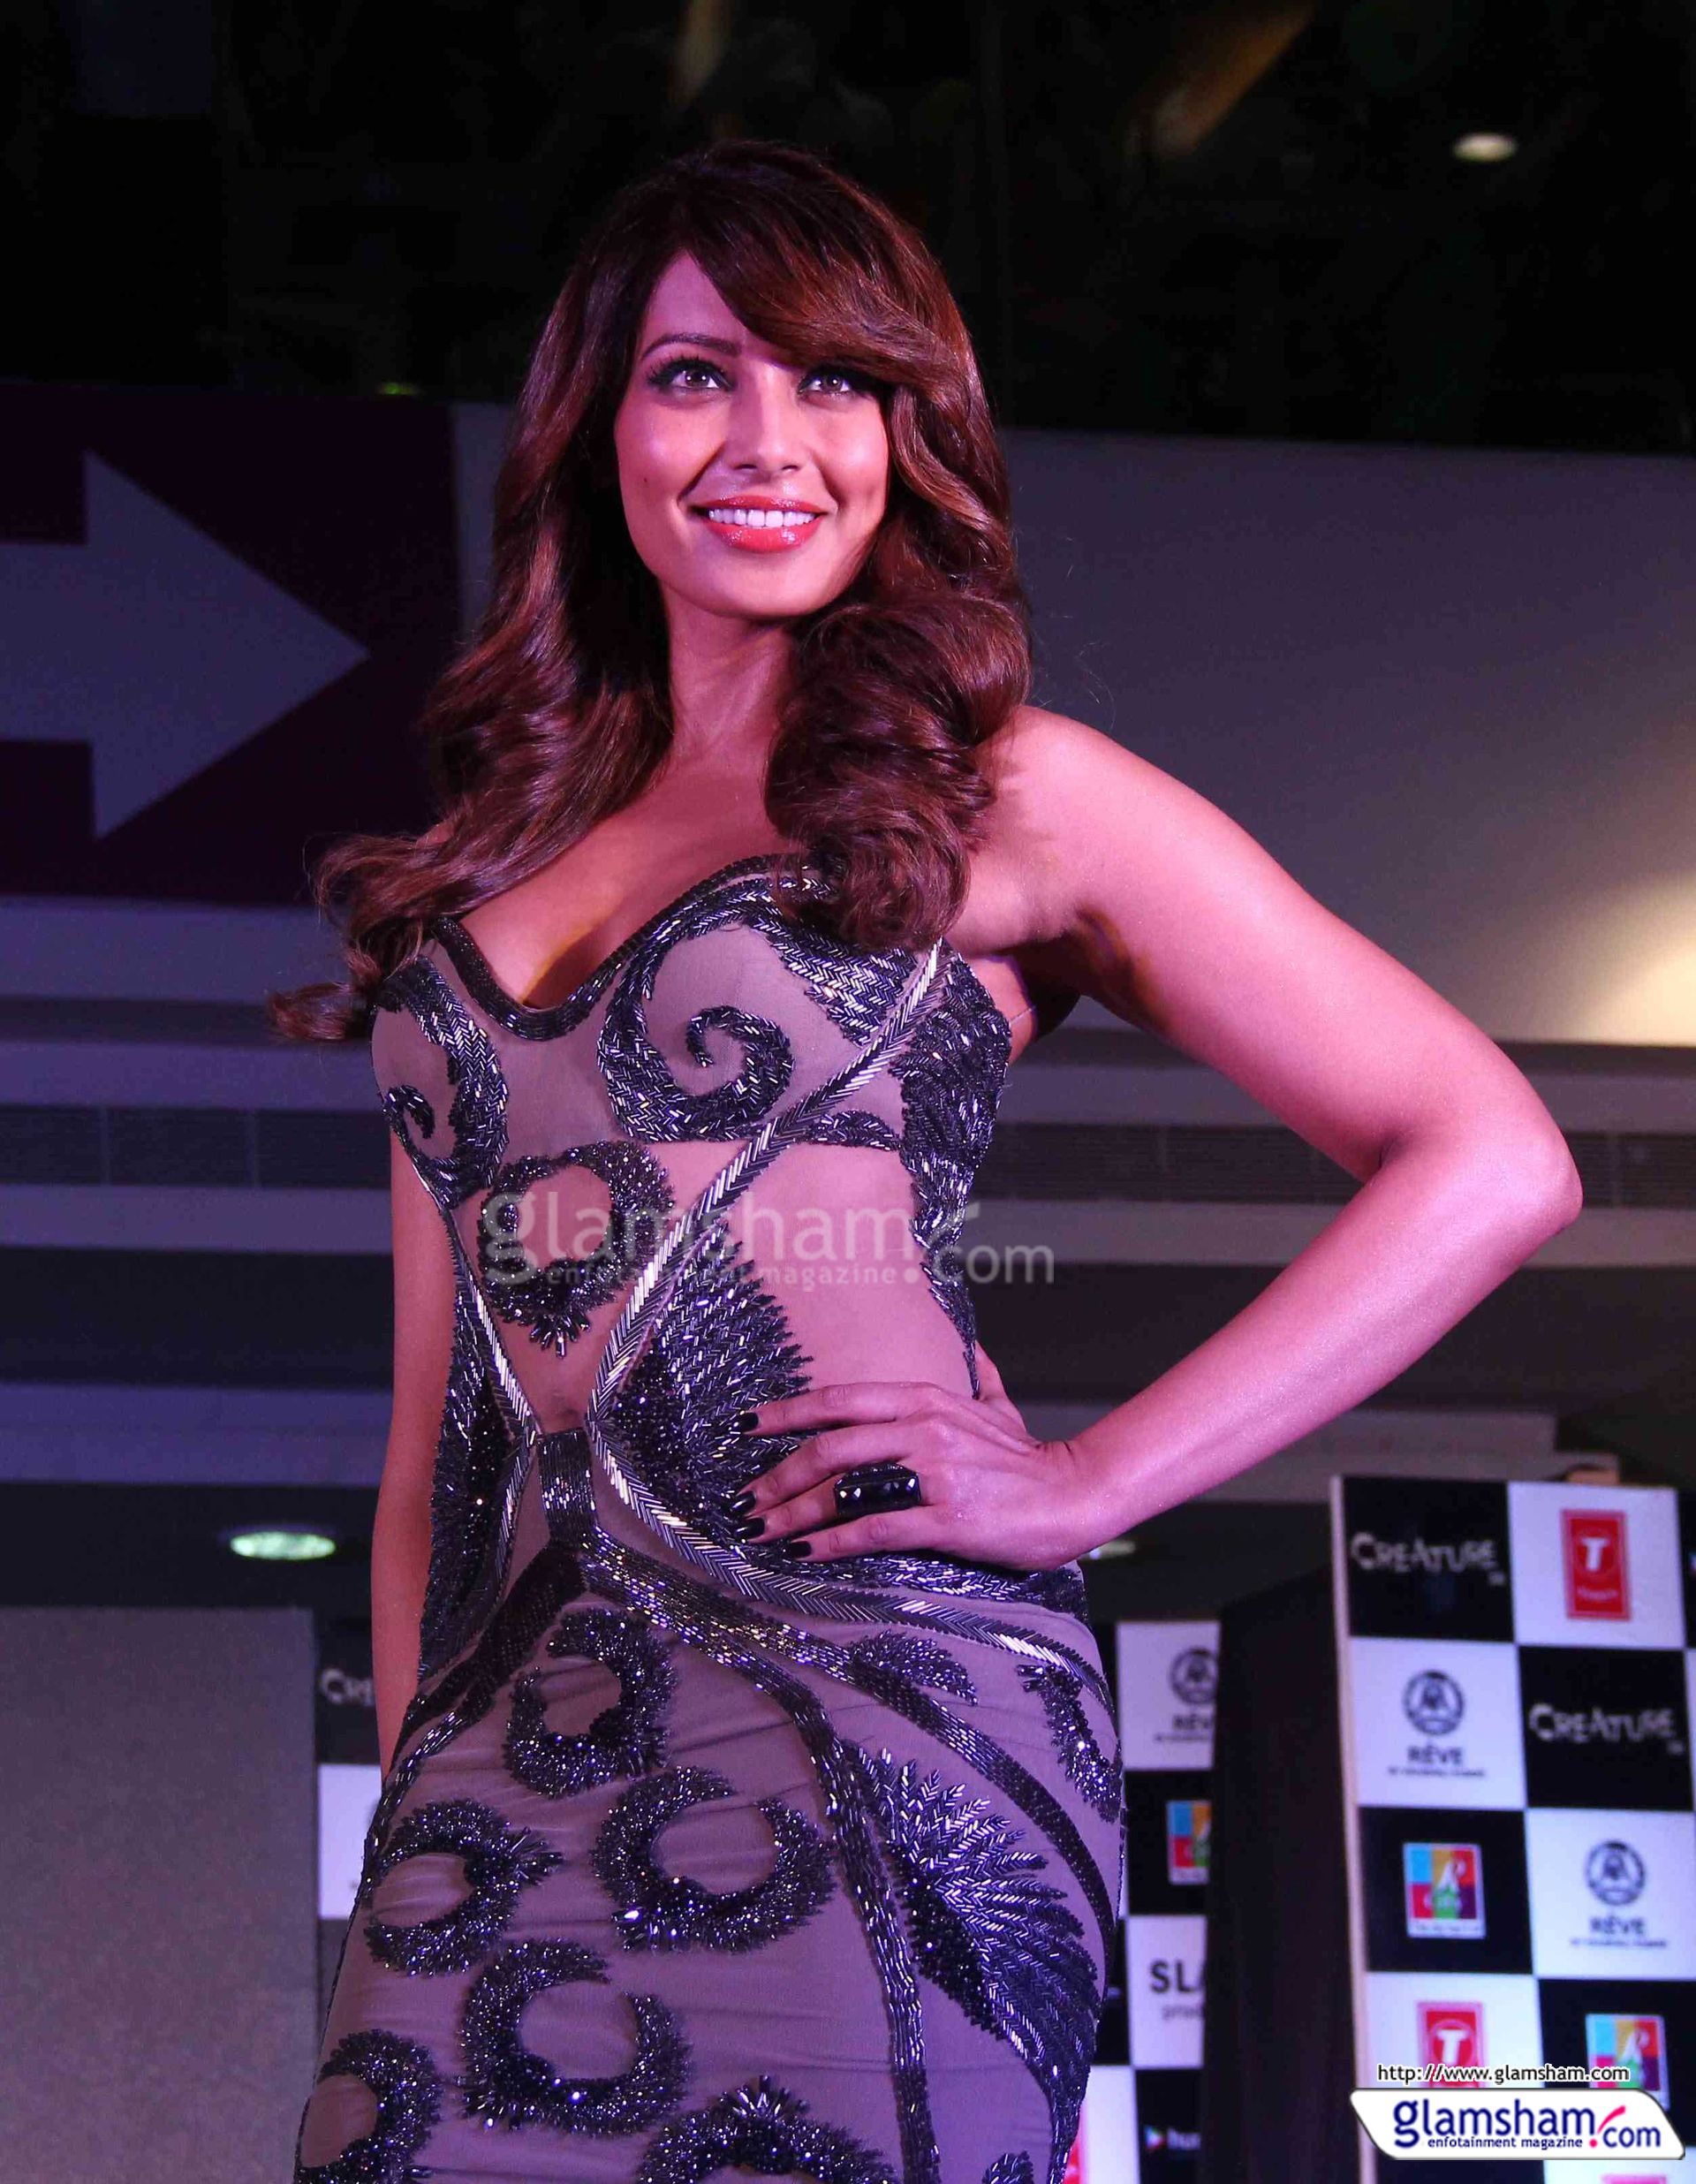 Bipasa Basunude Beautiful bipasha basu hd image gallery | bipasha basu | pinterest | hd